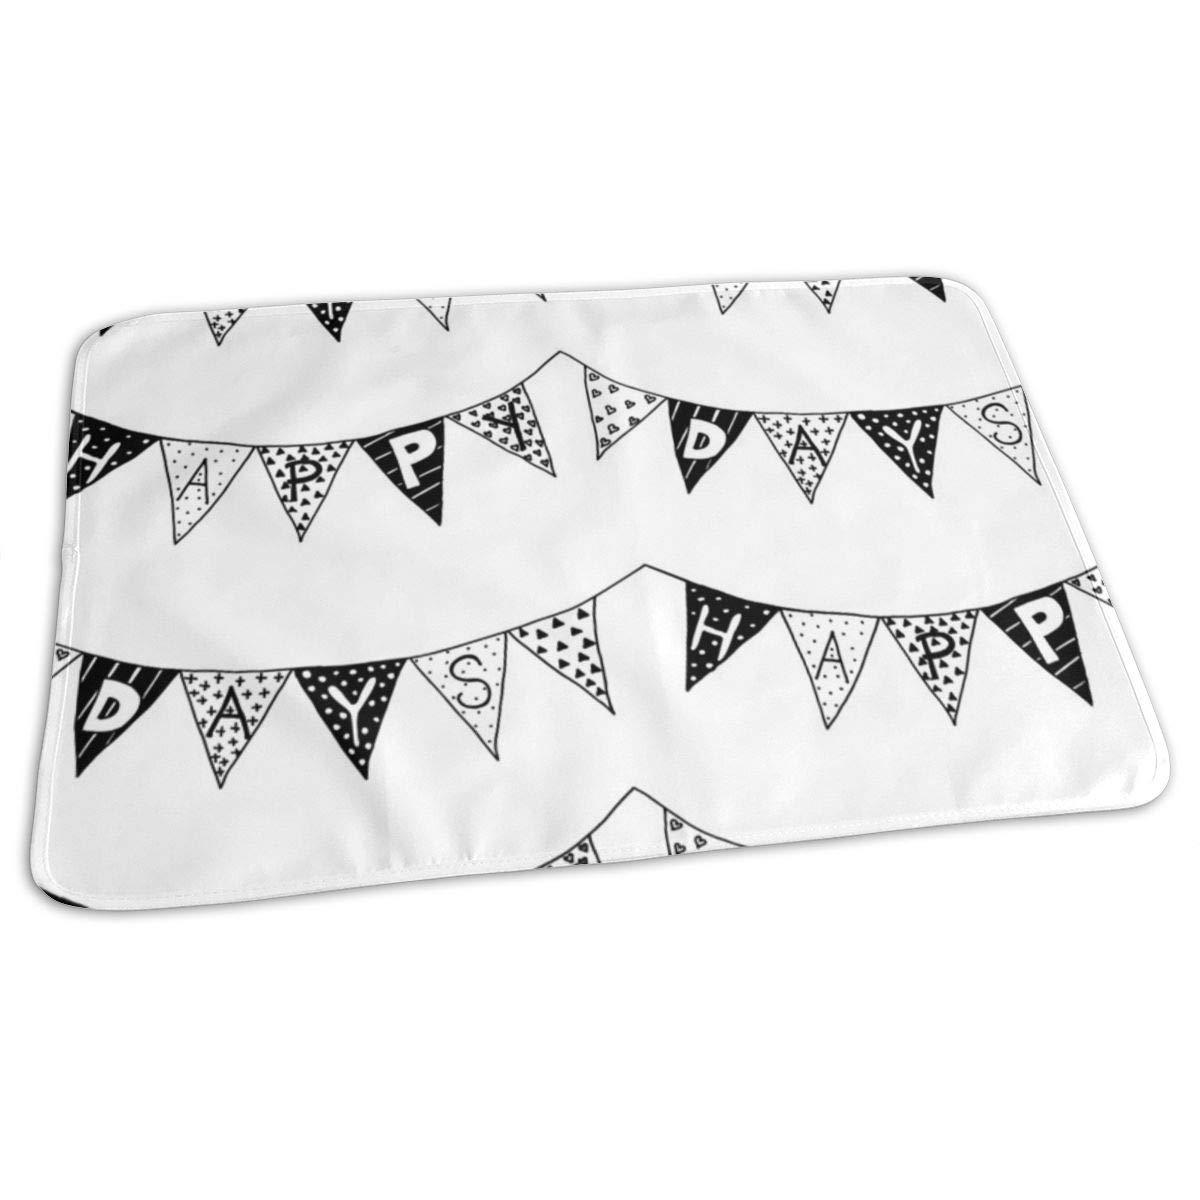 Happy Days Bunting Bw Baby Portable Reusable Changing Pad Mat 19.7x27.5 inch